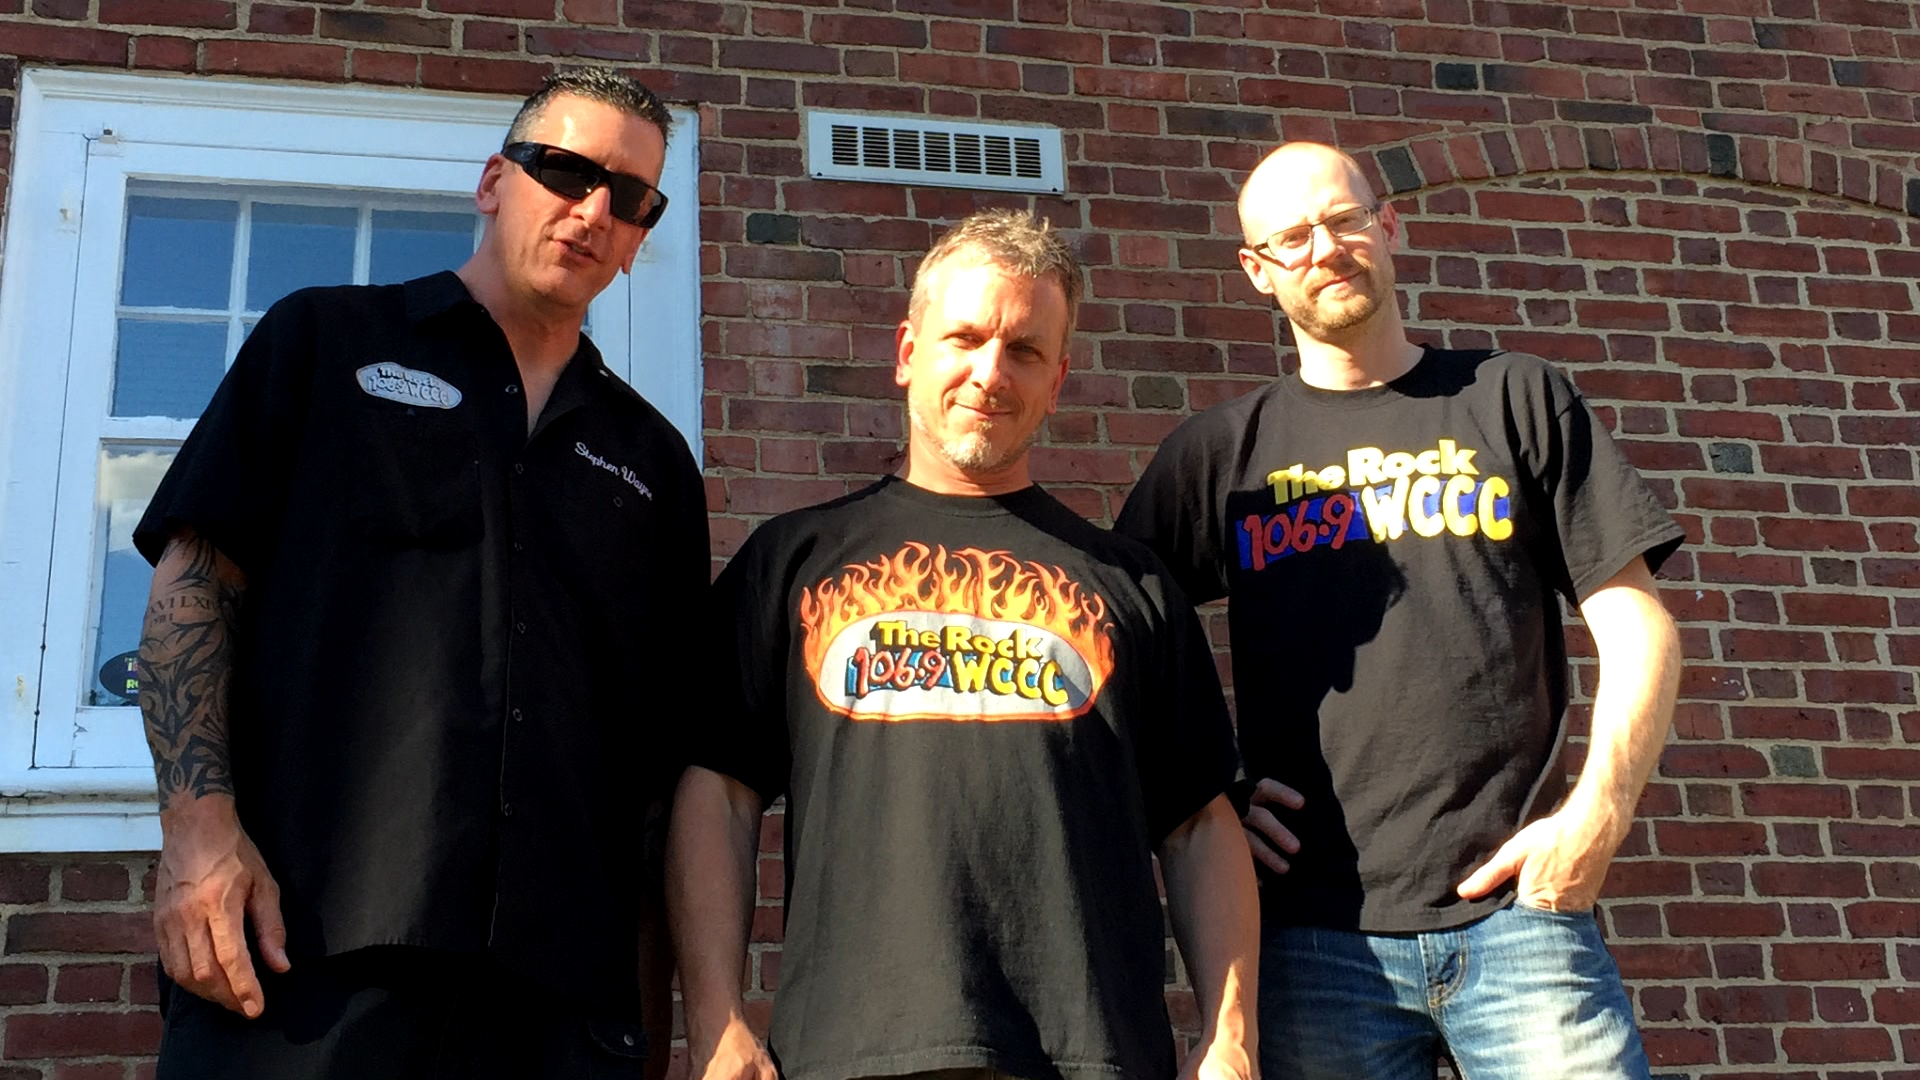 """Turn back the stereo dial and revisit Hartford's """"The Rock"""" 106.9 FM WCCC, the go-to station for hard rock music fans in Western Mass and Connecticut."""